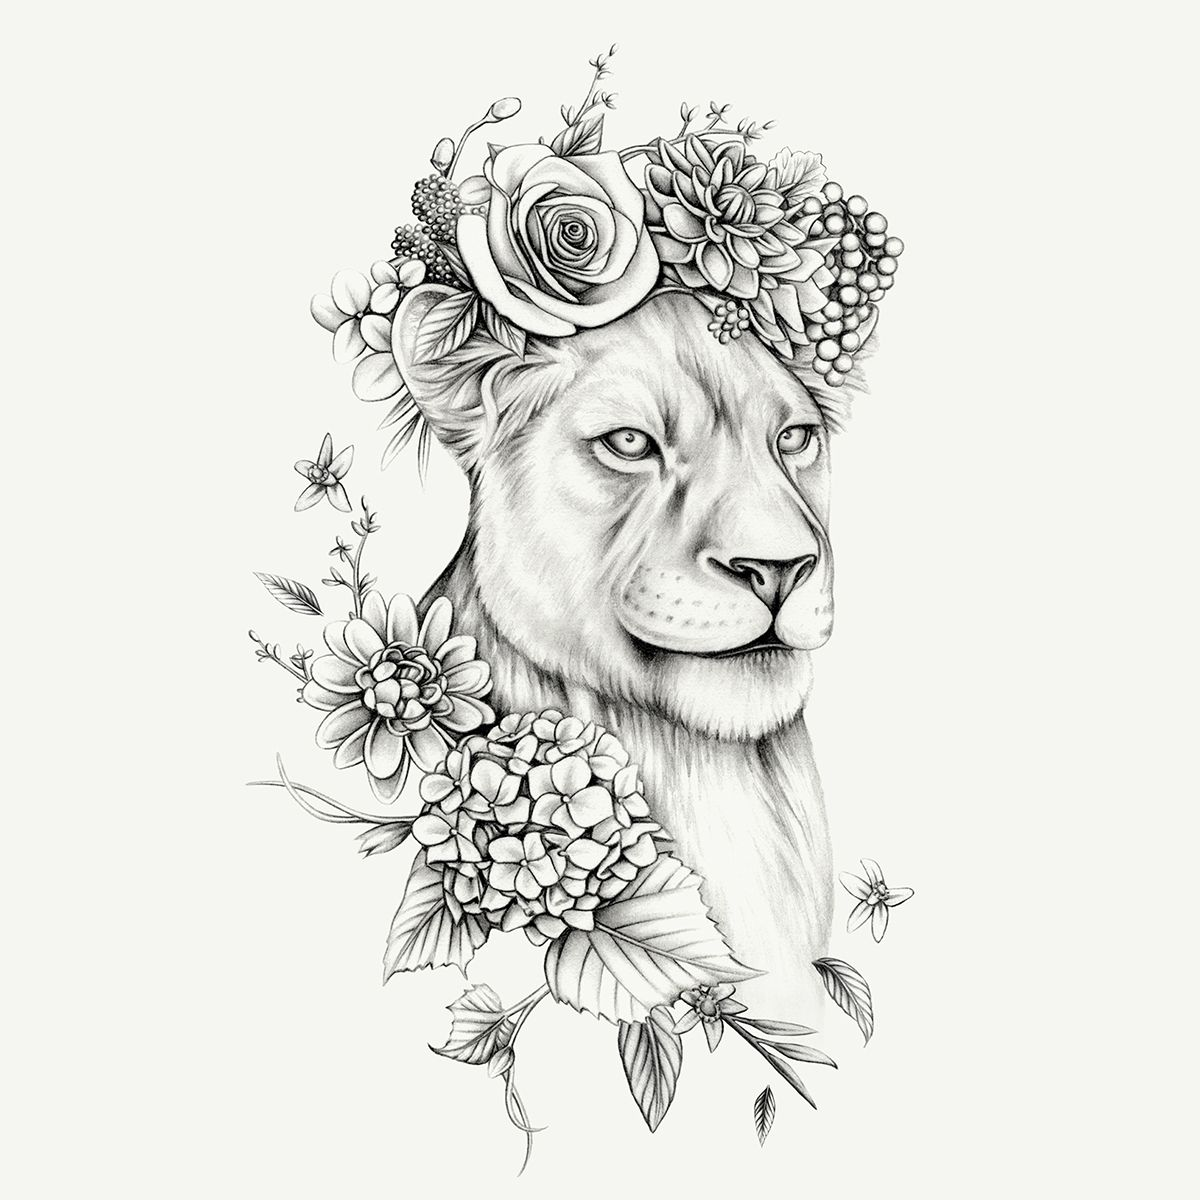 Lioness By Lauren Mortimer Lioness Tattoo Design Lioness Tattoo Lion Tattoo Design